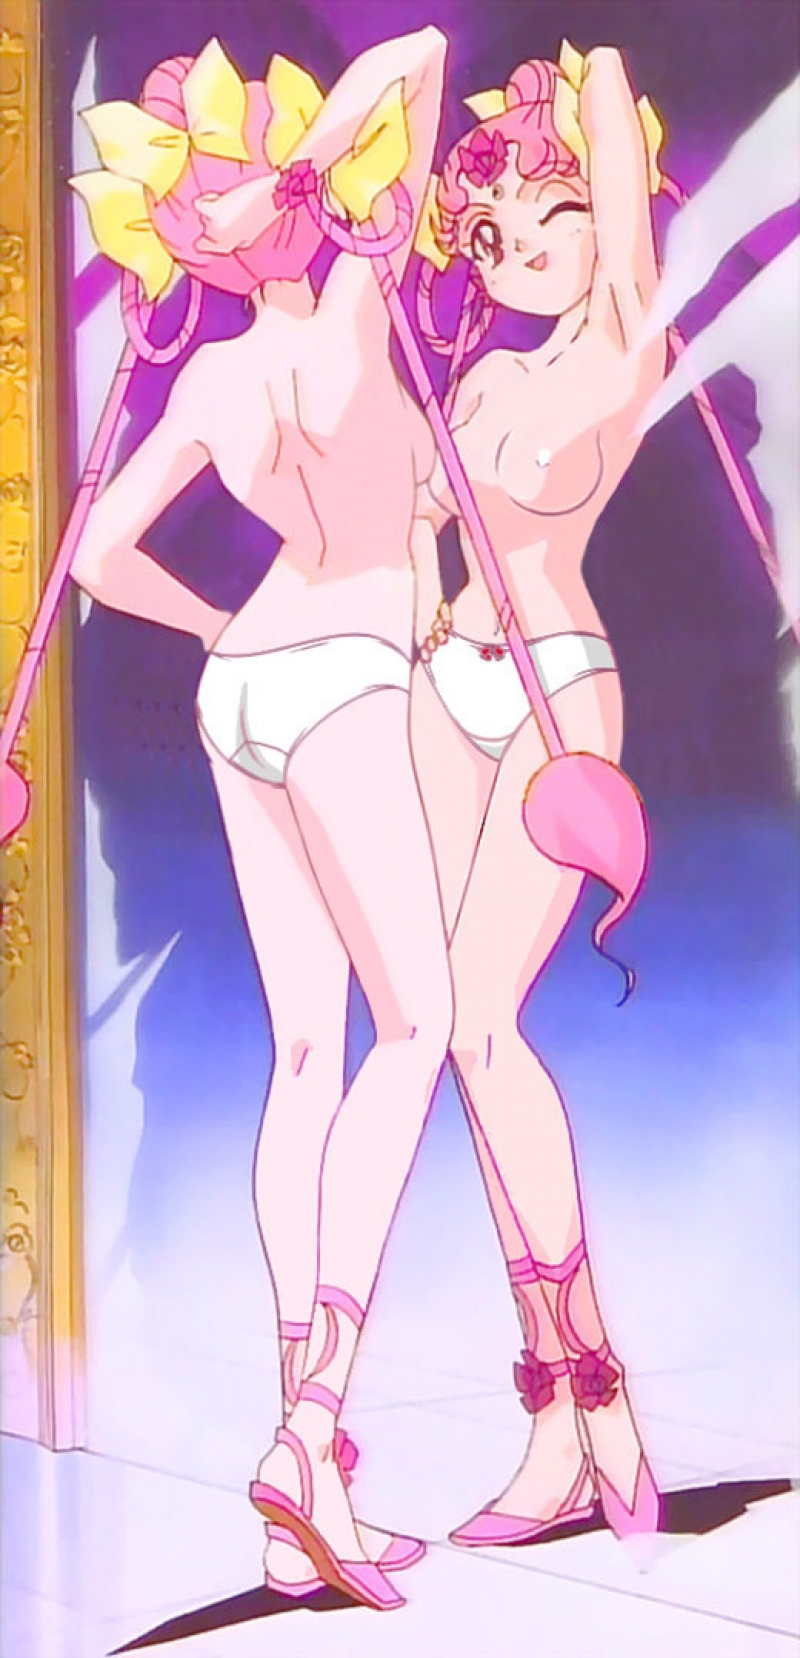 Chibiusa likes to see on her developed mind-blowing bod in the mirror